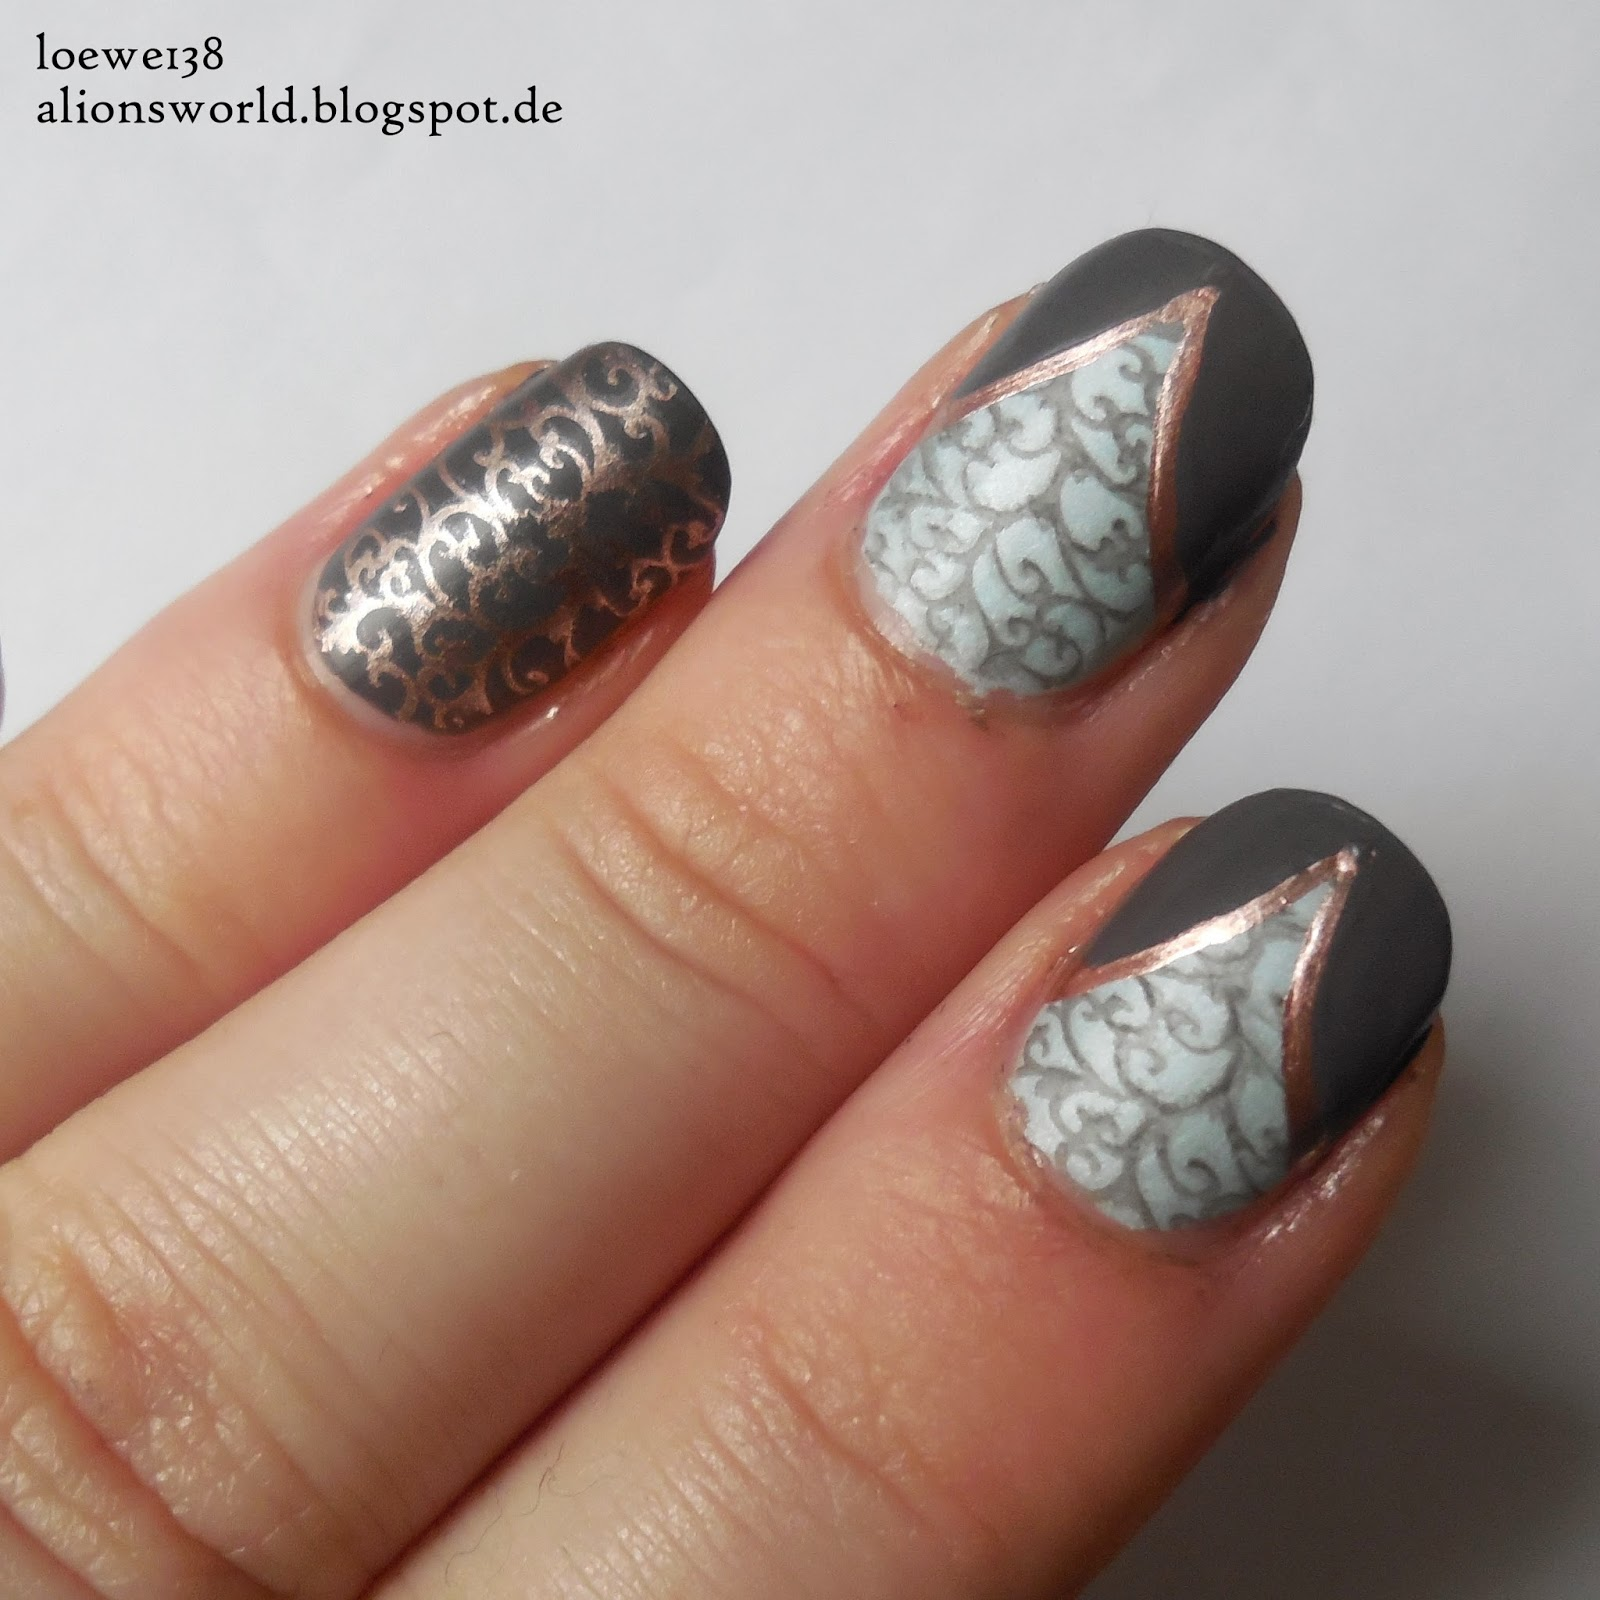 http://alionsworld.blogspot.com/2015/01/rokoko-nails-twinnails-mit.html